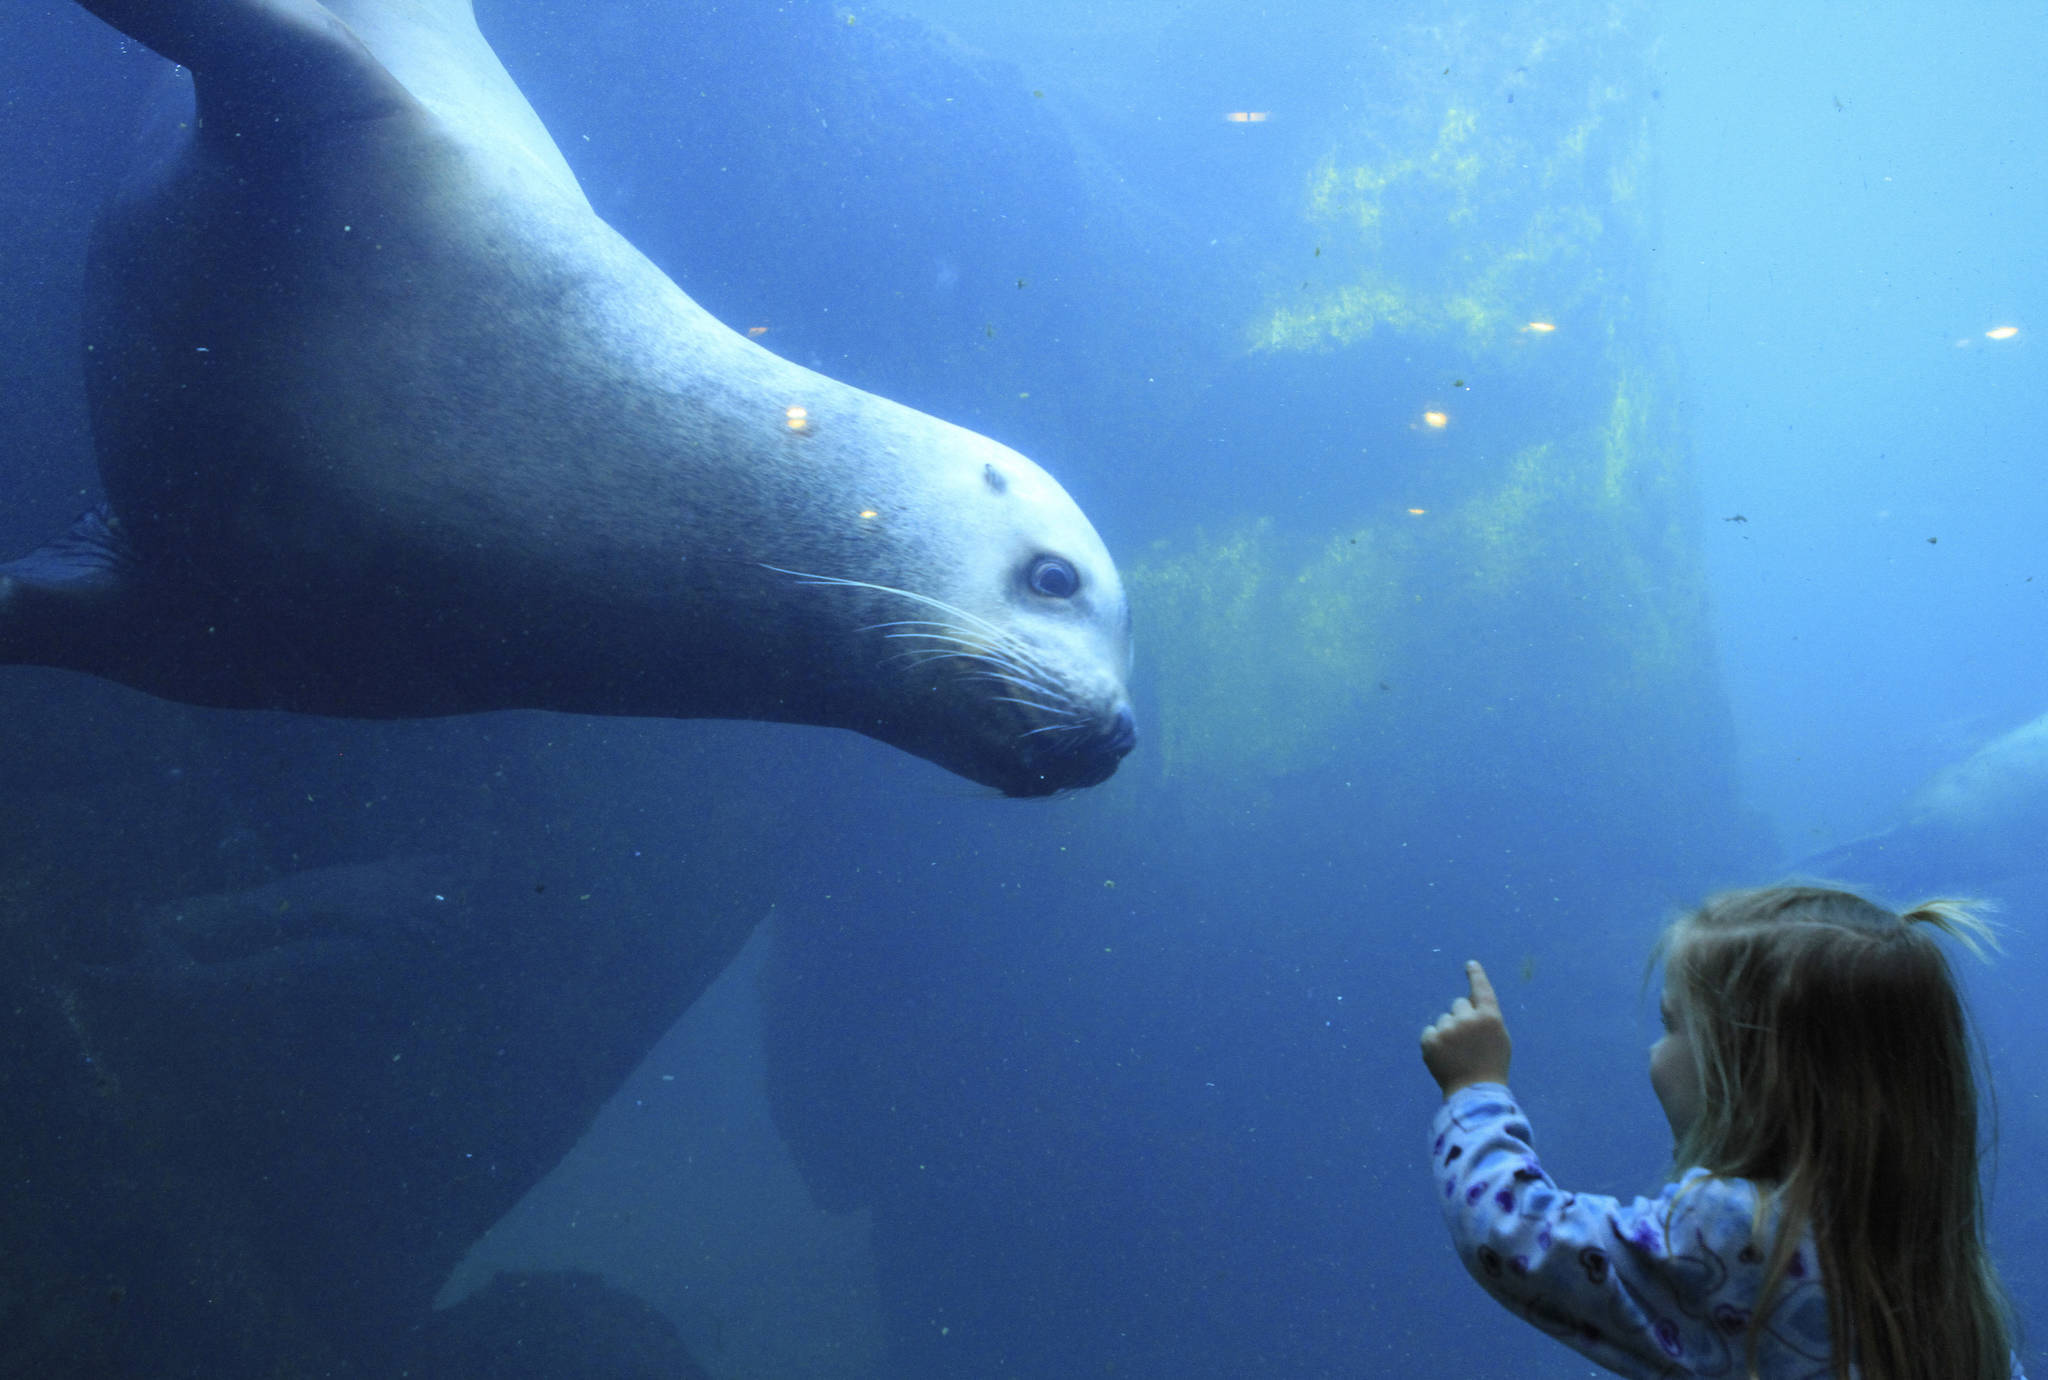 Elin Lunoe, and Pilot, a Steller sea lion, check each other out at a tank at the Alaska SeaLife Center in Seward in this February 2015 photo. The Alaska SeaLife Center is in jeopardy of closing after concerns surrounding the coronavirus pandemic have drastically reduced visitation rates. (AP Photo | Dan Joling, File)